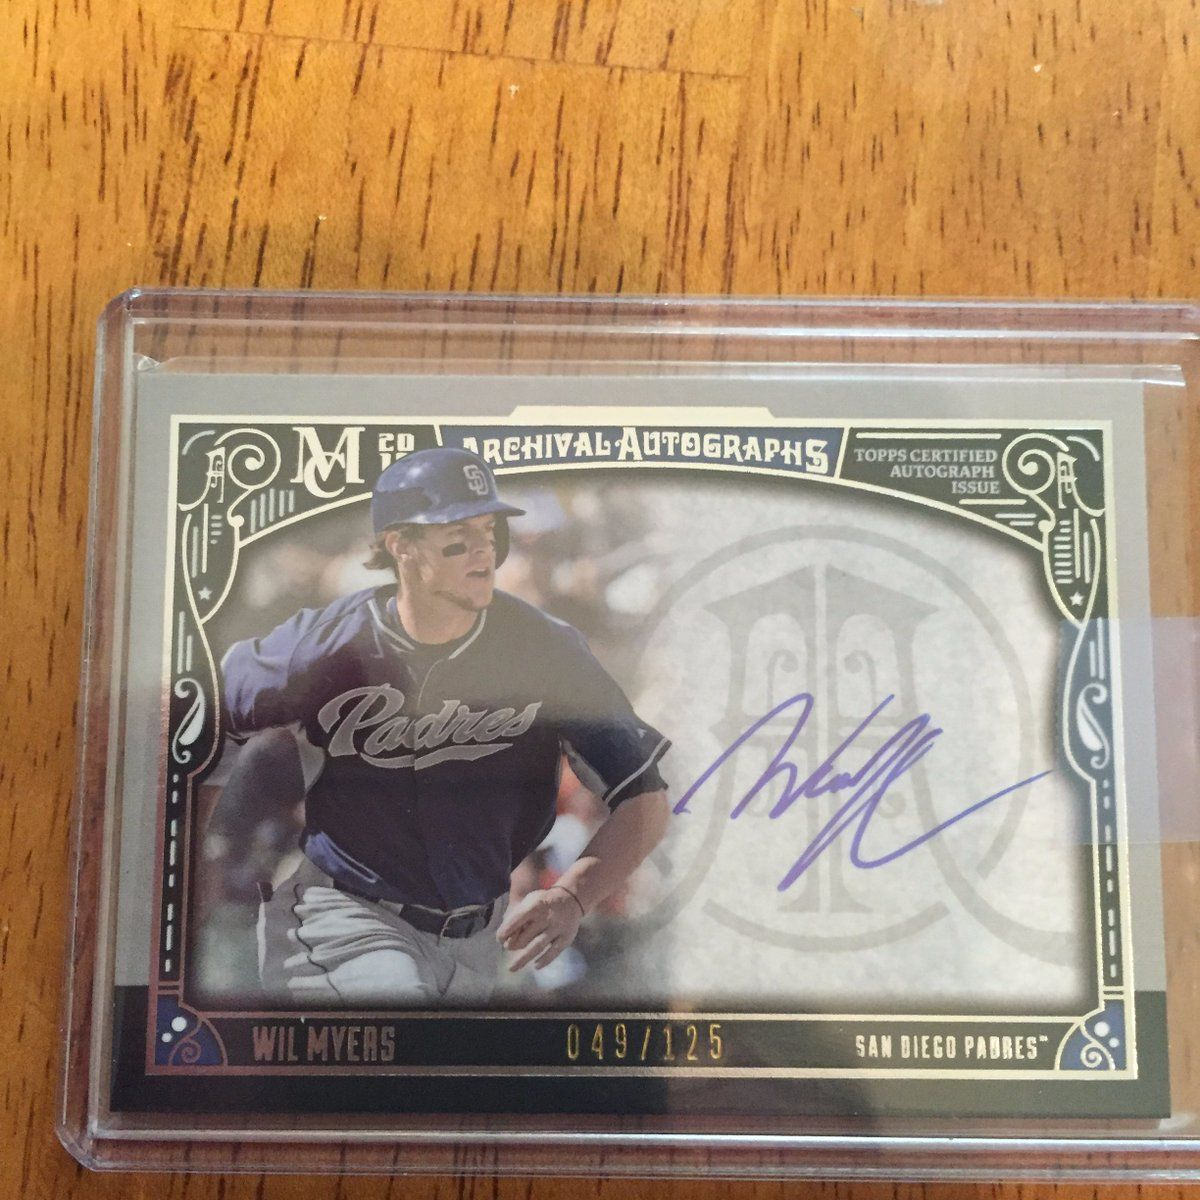 Autograph through the mail on 7/7 Wil Myers, AllStar OF